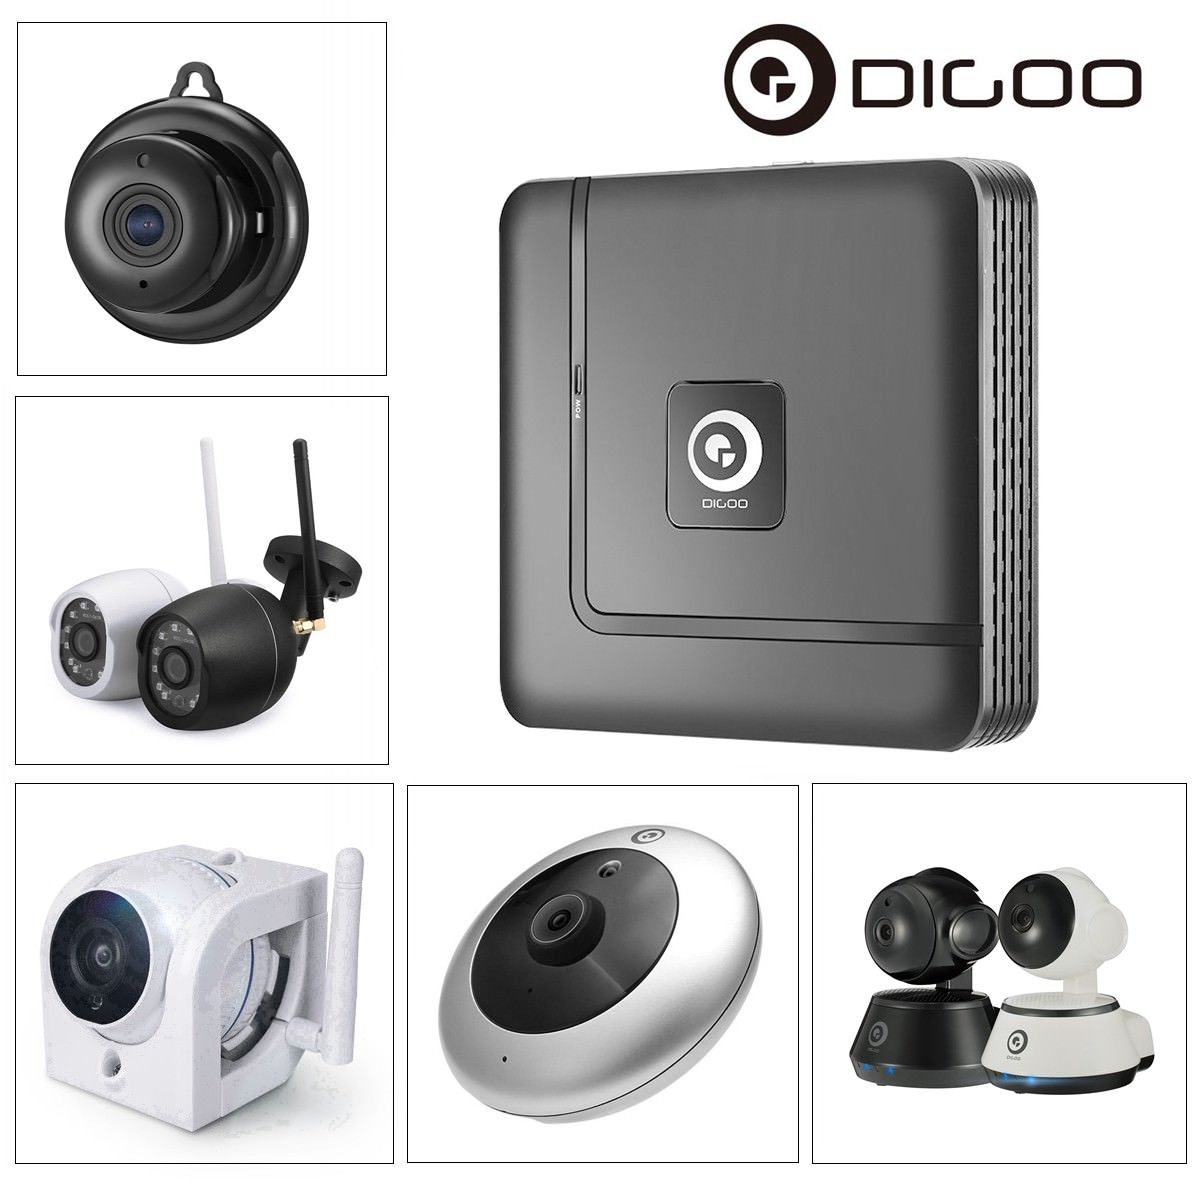 Digoo Smart Home Security Indoor Outdoor Wireless WiFi Network IP Camera Baby Monitor CCTV,Night Vision IR Motion Detection Two-Way APP Control With NVR Video Recorder